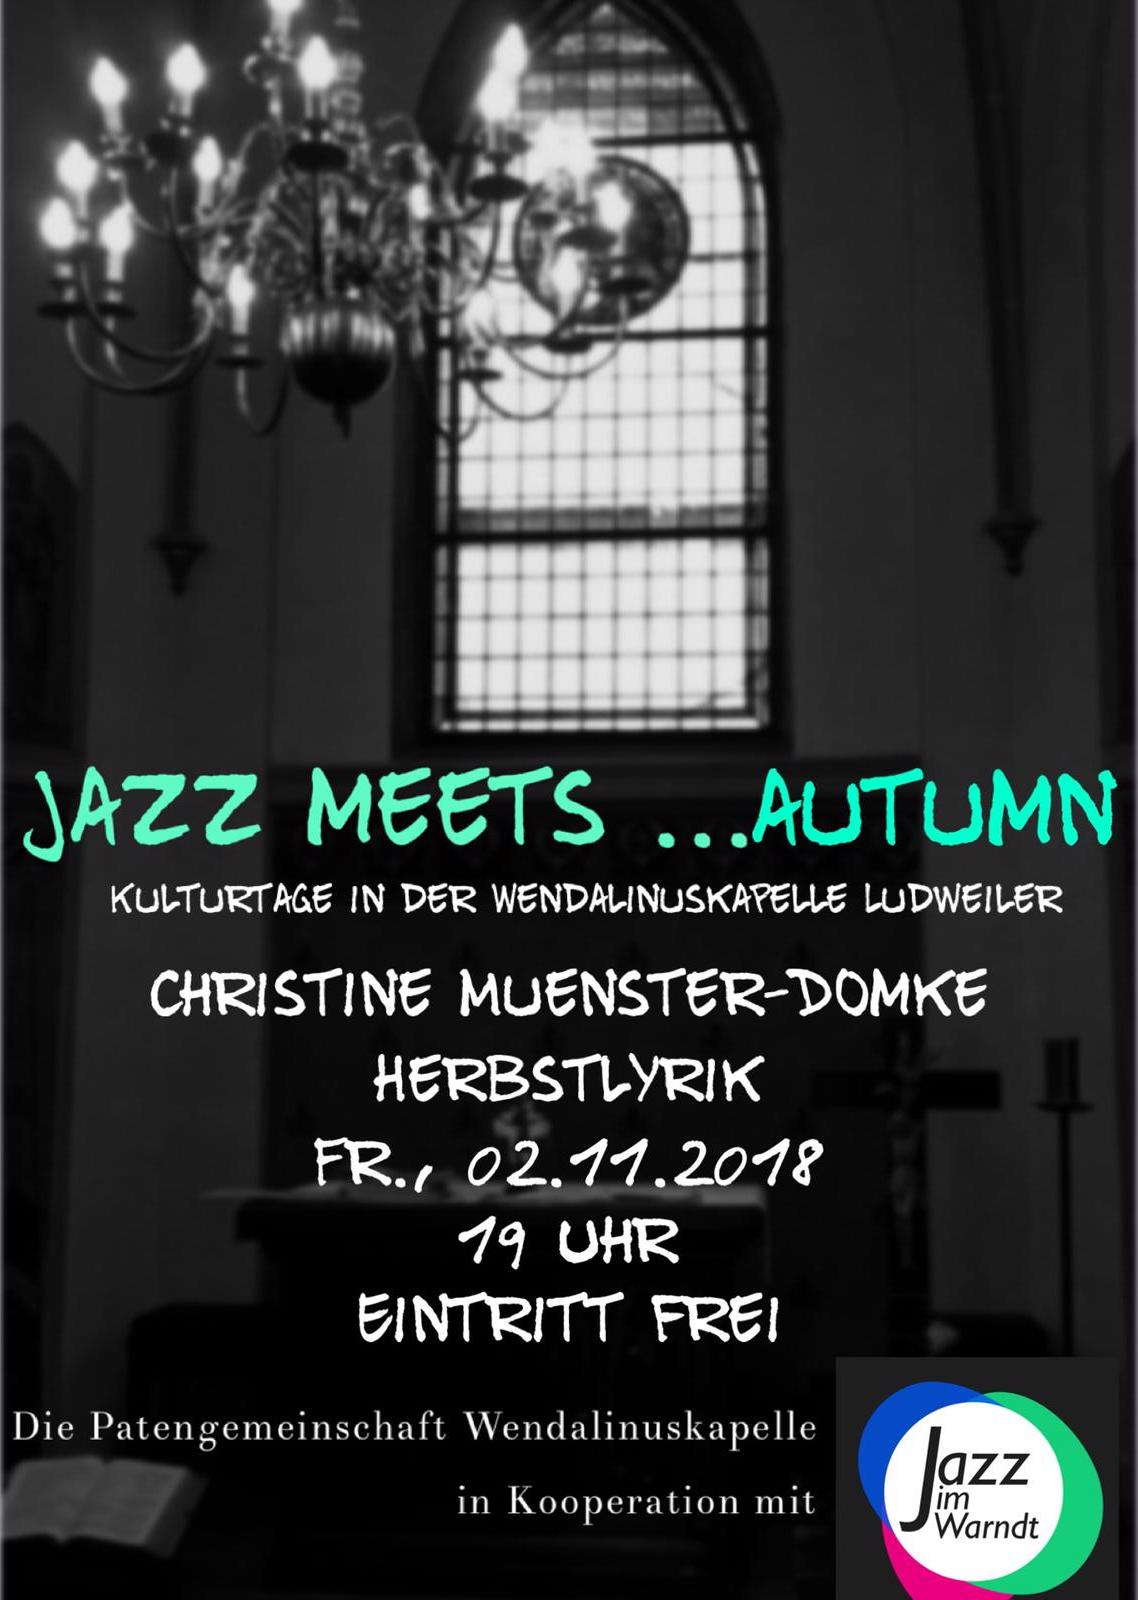 Jazz Meets ...Autumn